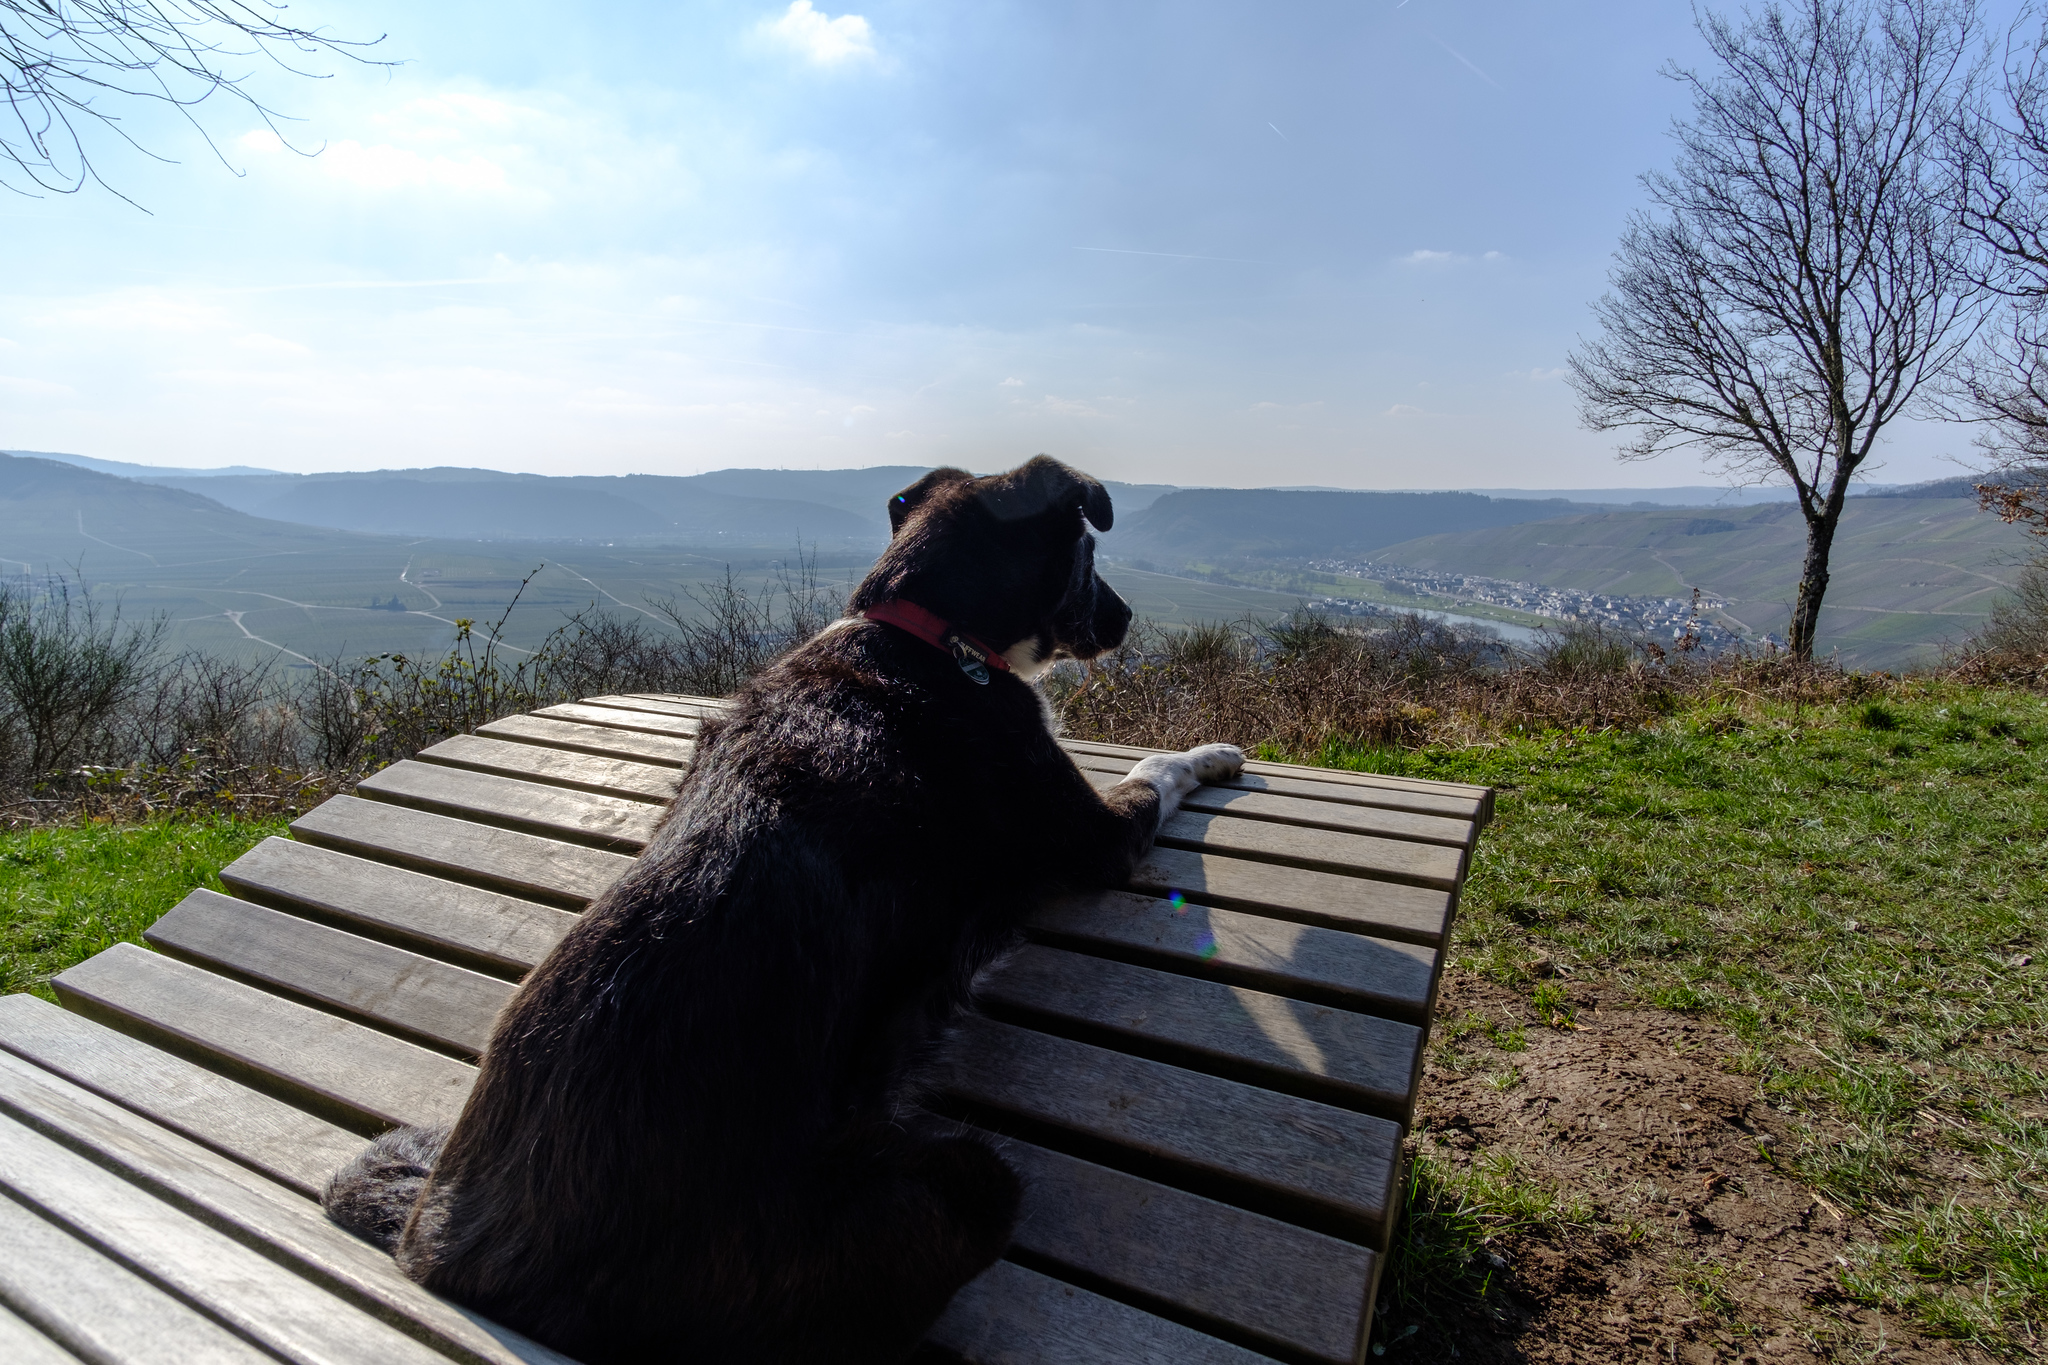 Bijou on a bench overlooking a valley